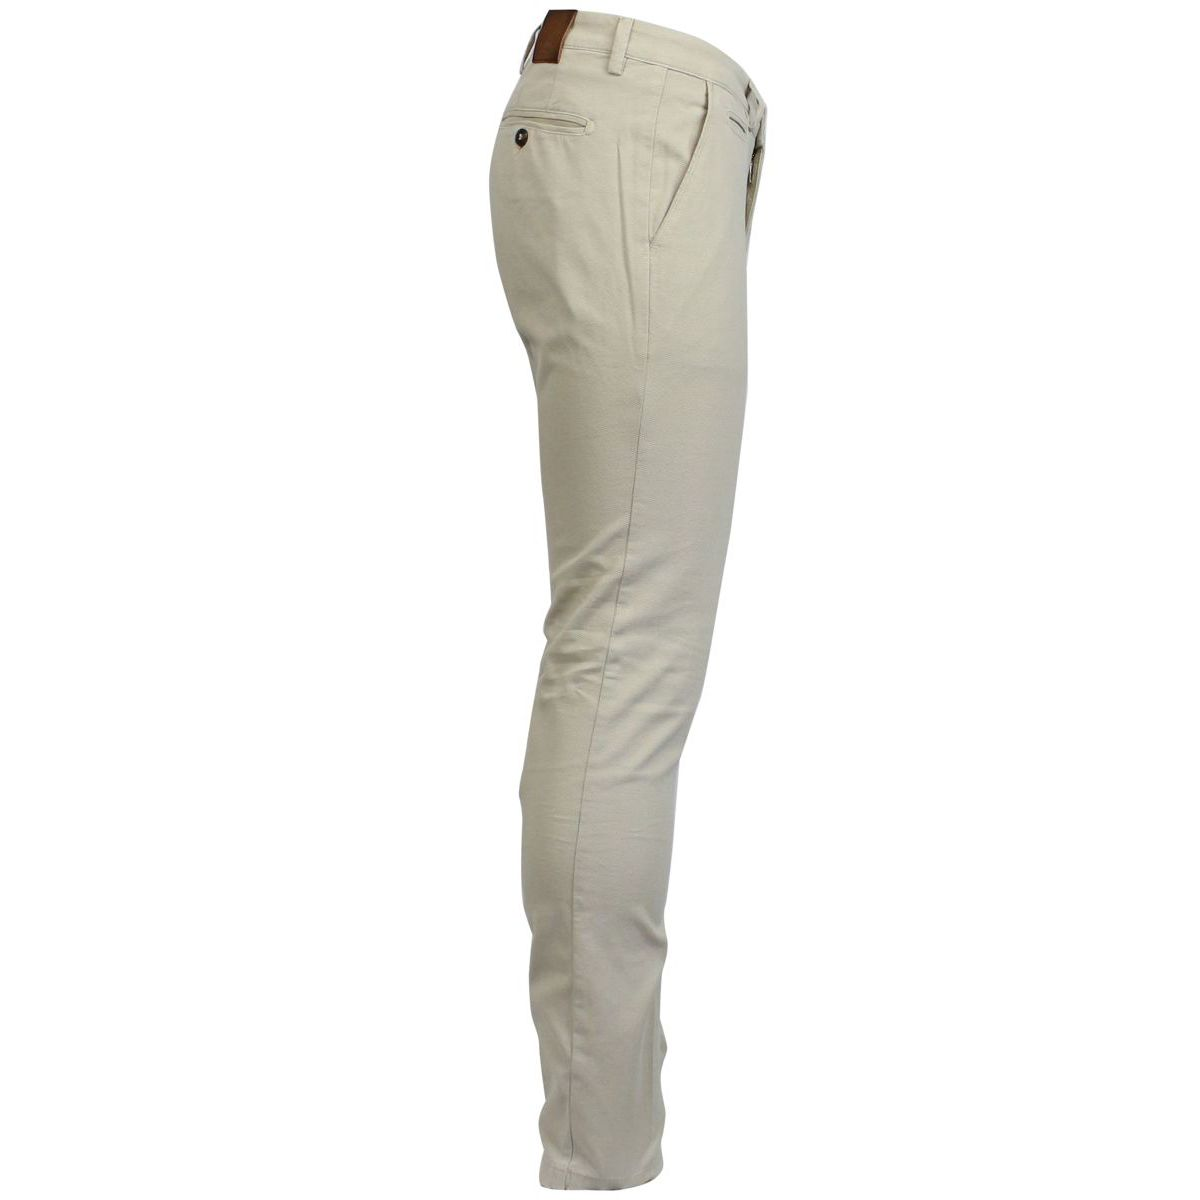 Stretch trousers with america pockets Beige BRIGLIA